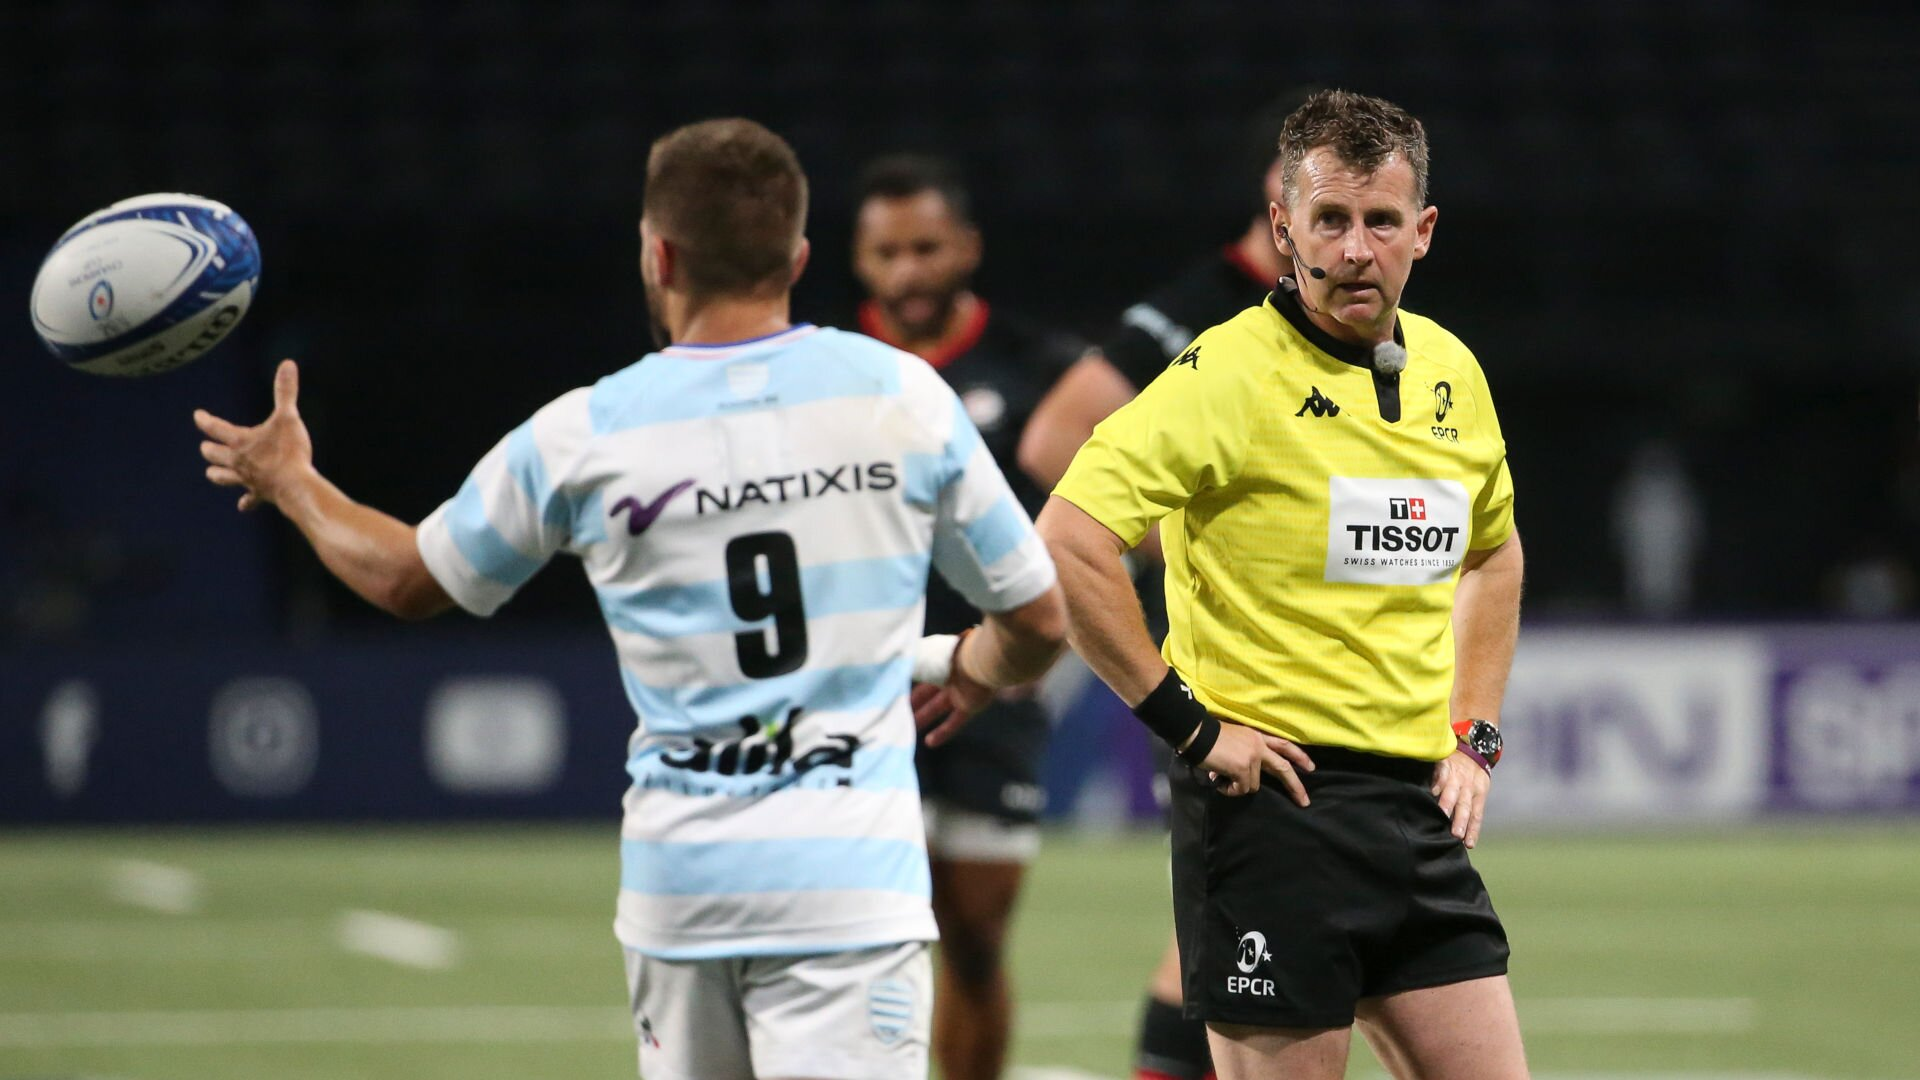 Nigel Owens lauded for refusing to put up with loophole that's annoyed so many fans